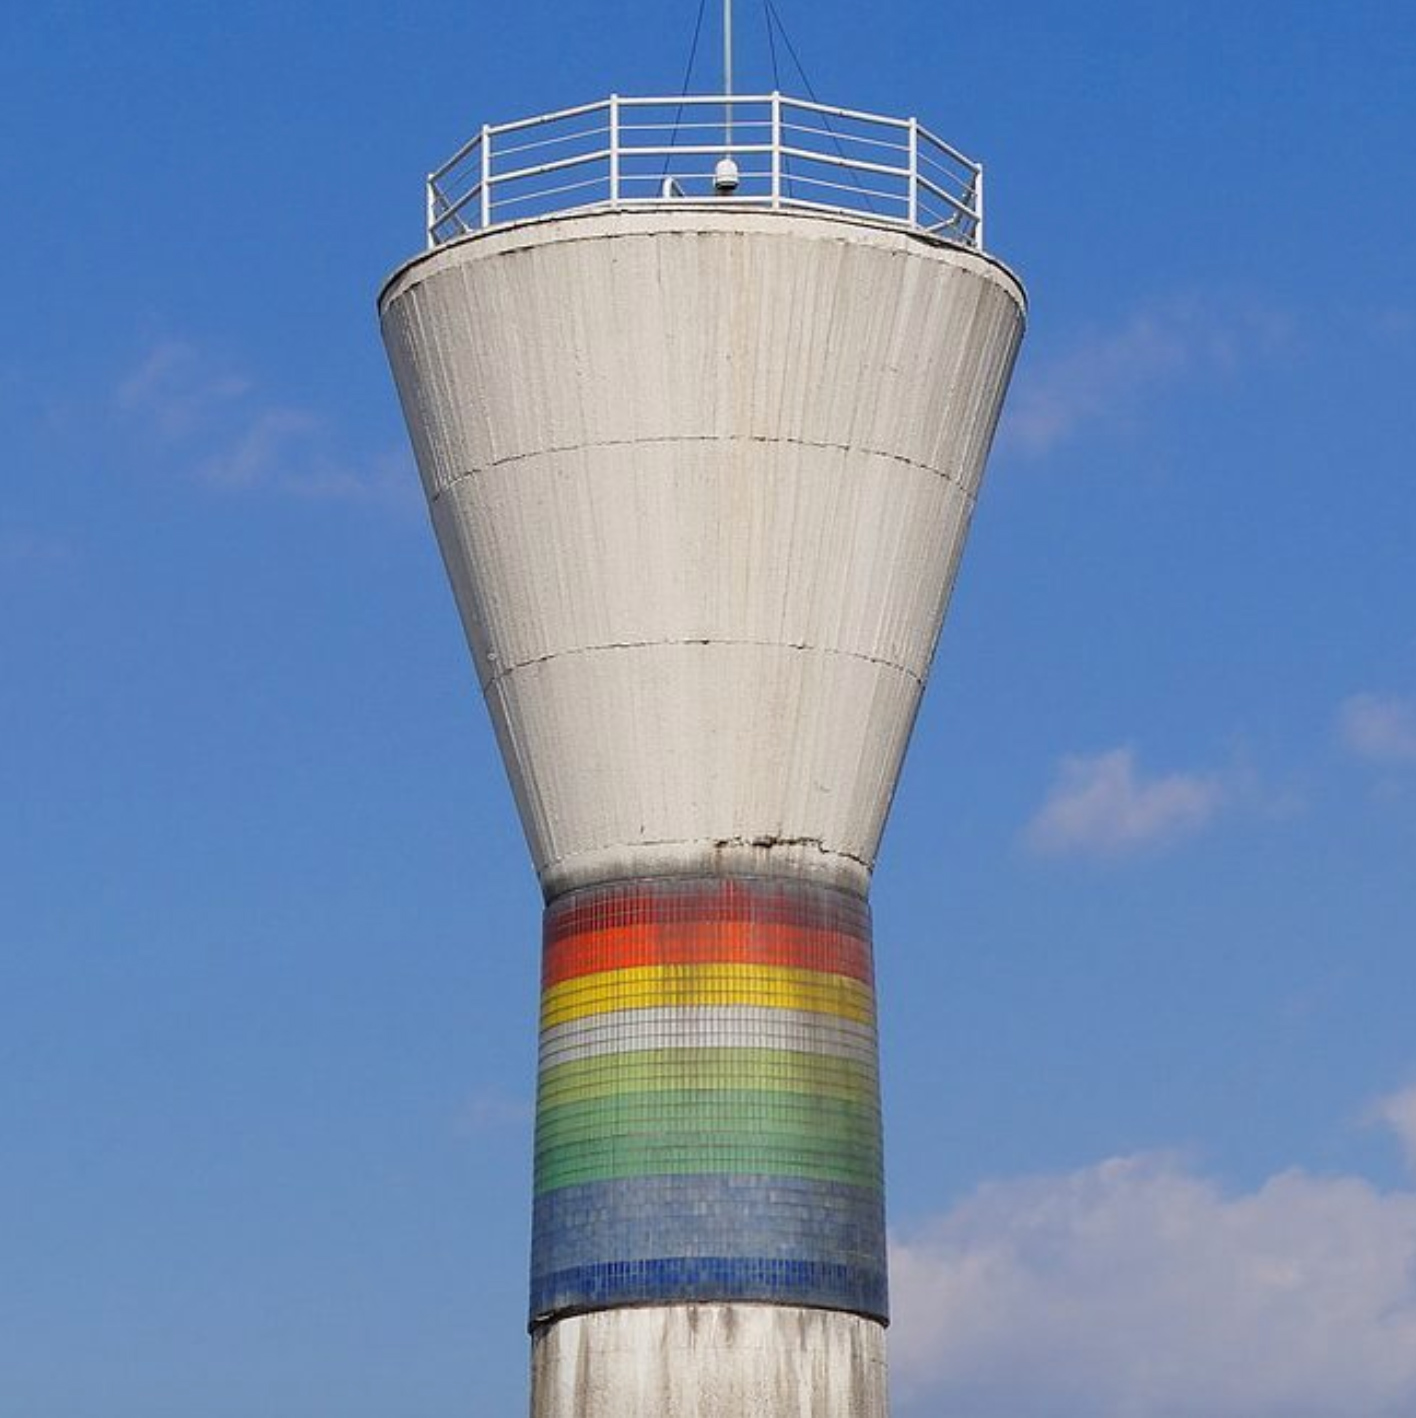 Instagram Account Dedicated to Japanese Water Towers